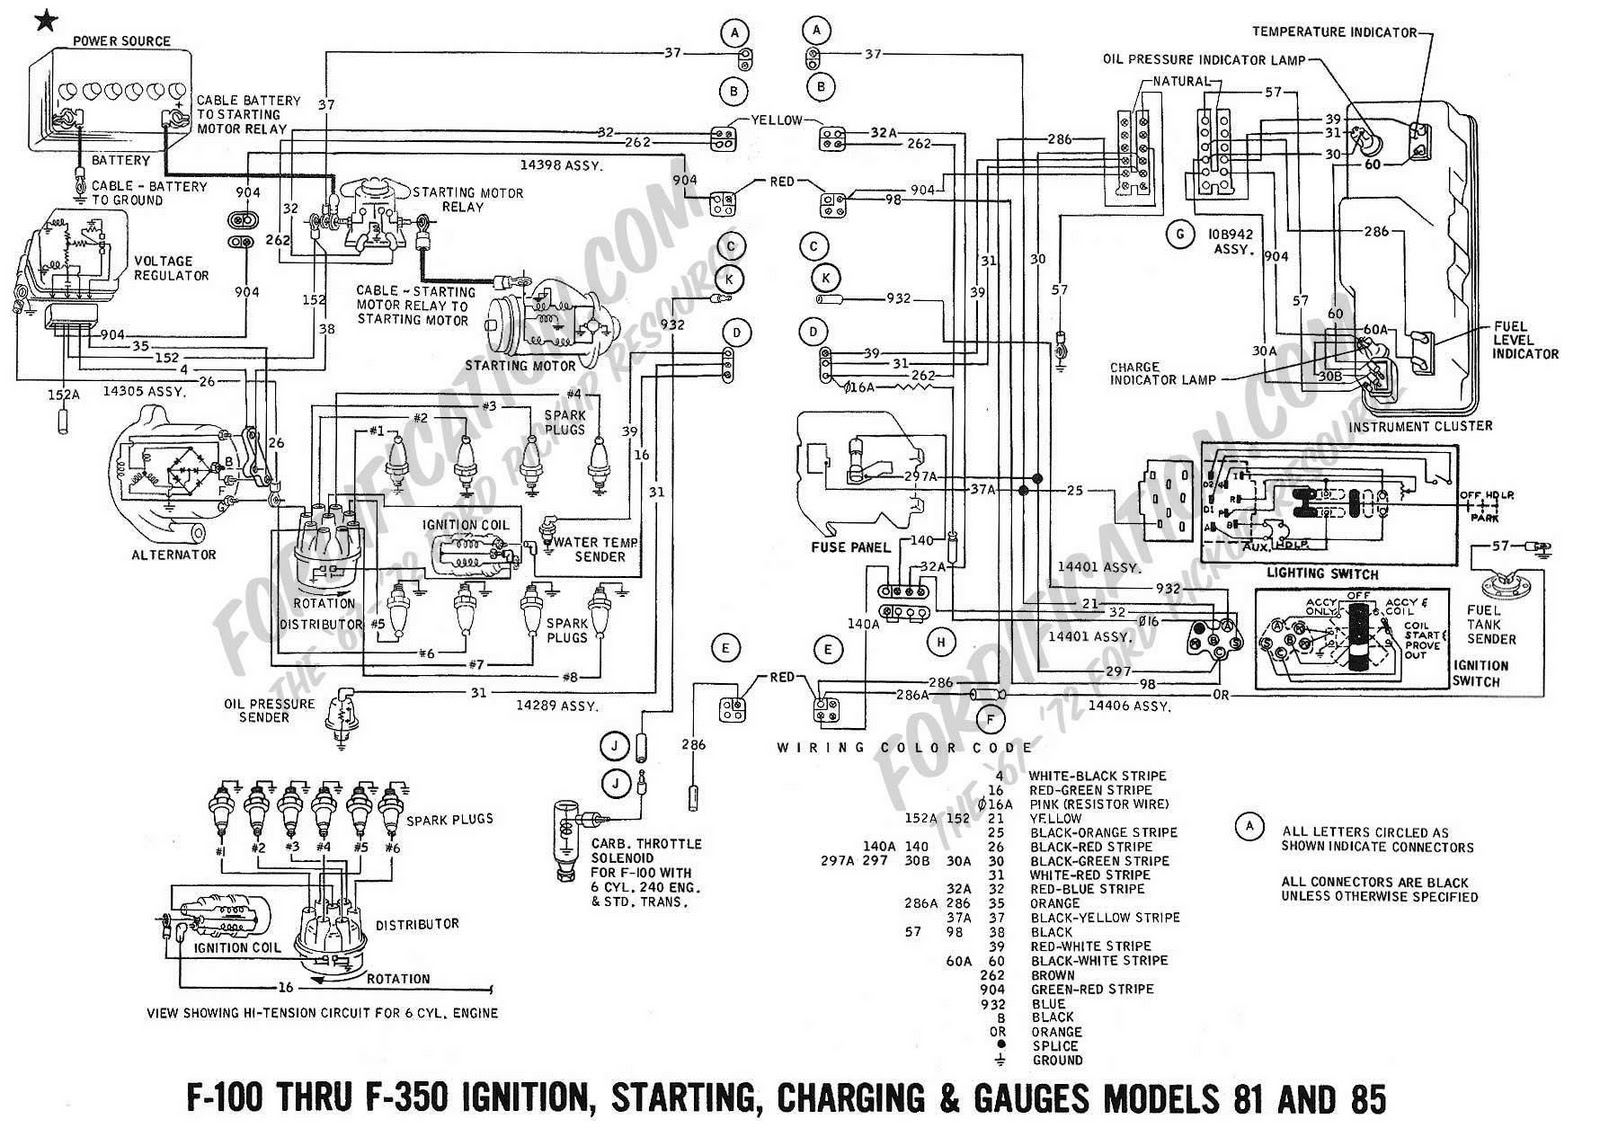 Audi Tt Engine Fuse Box Trusted Wiring Diagrams 1969 Vw Bug Schematic Ford F100 F350 Ignition Starting Charging And 3 2 Tuning 2001 Diagram